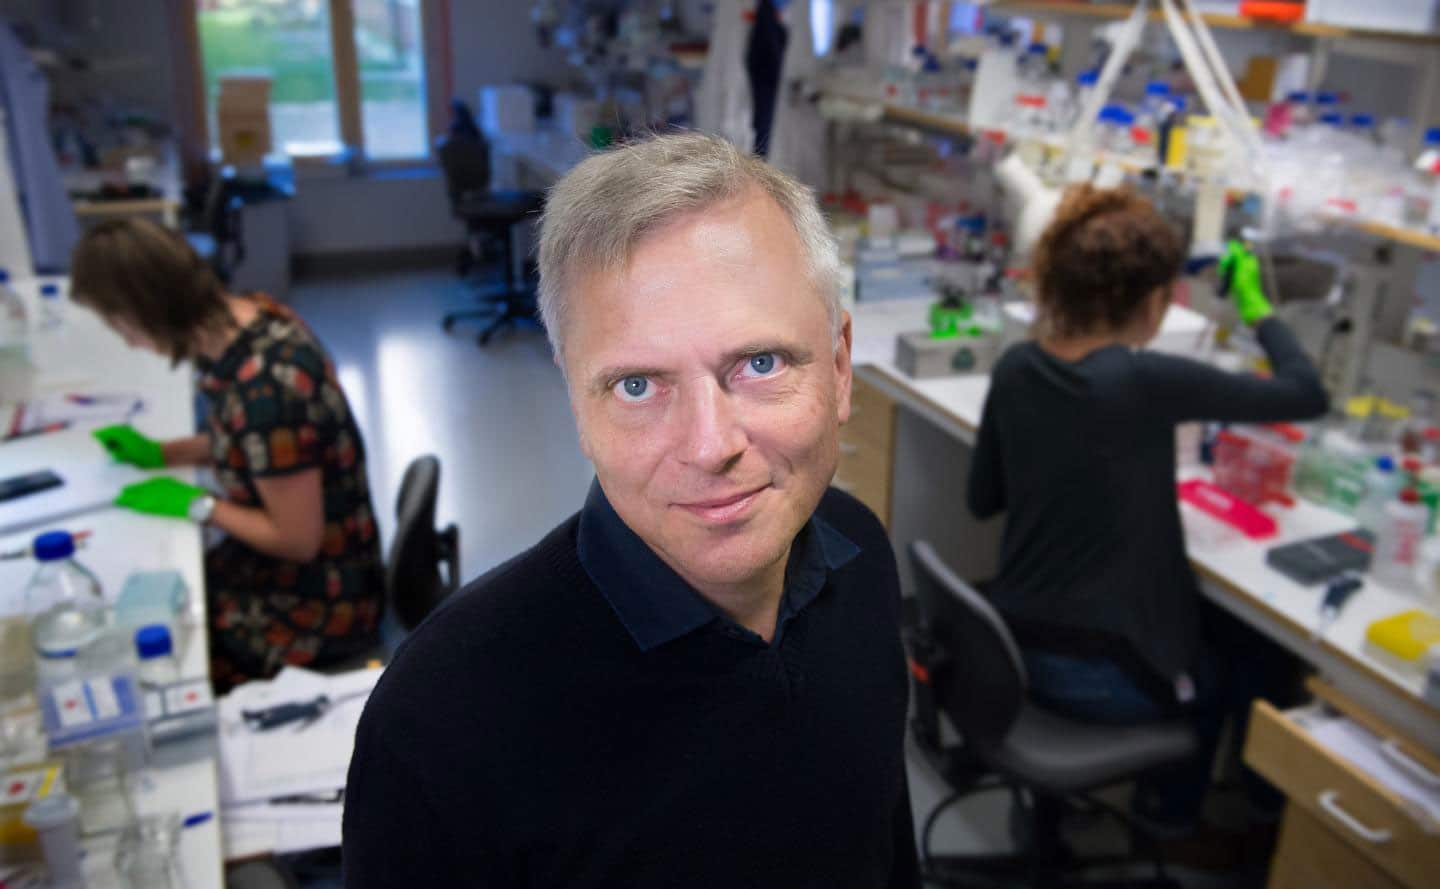 Patrik Ernfors, PhD, Professor at the Department of Medical Biochemistry and Biophysics, Karolinska Institutet, Sweden. CREDIT Gunnar Ask